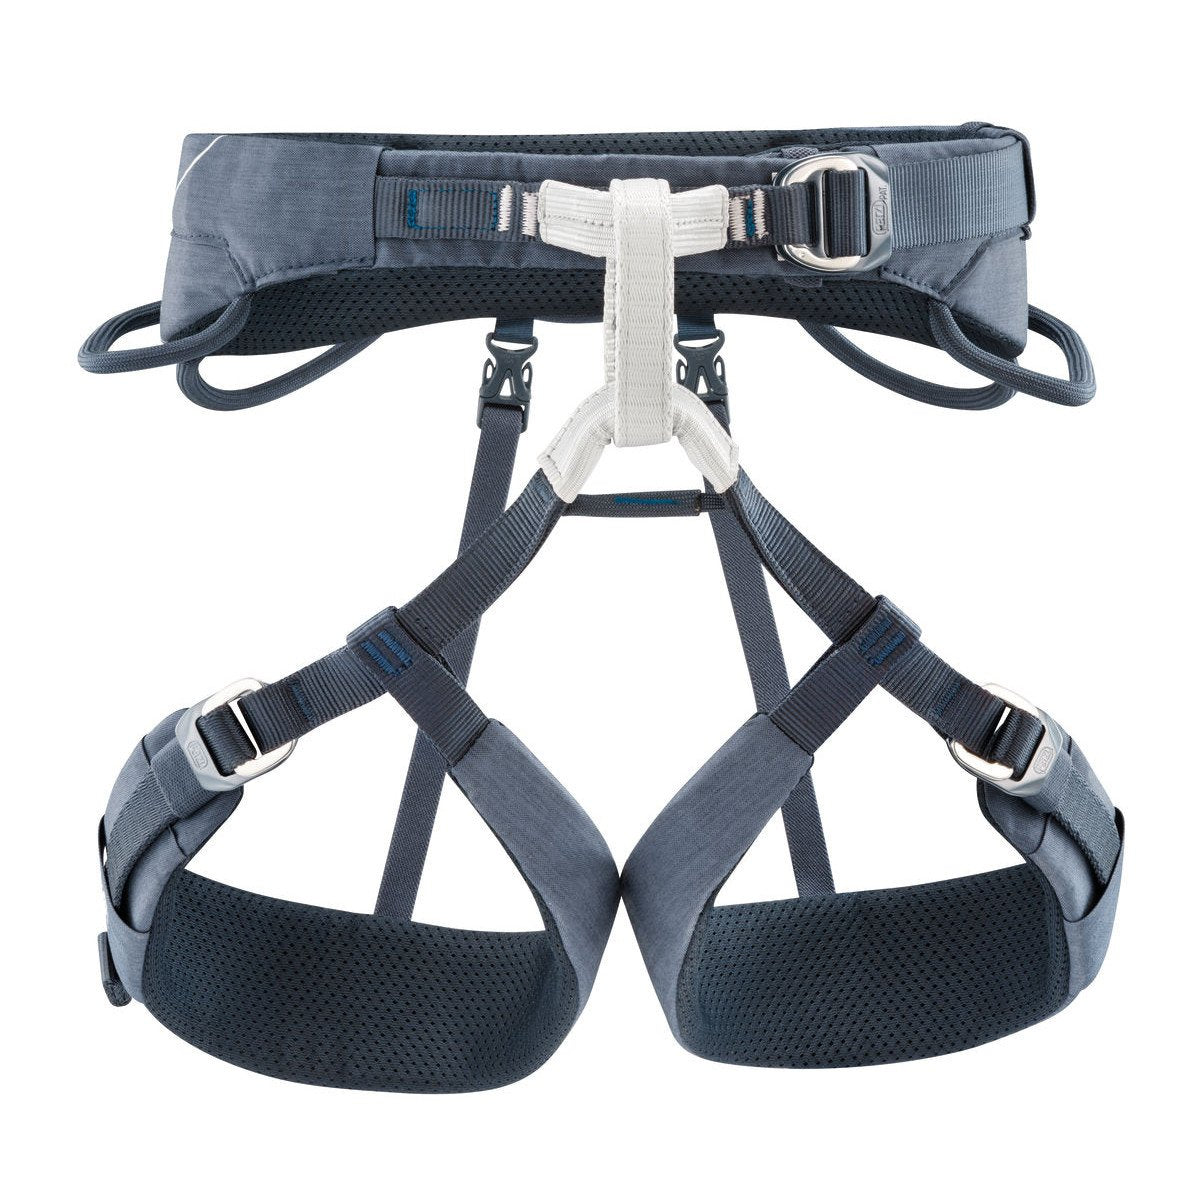 Petzl Adjama climbing Harness, front view in black and white colours